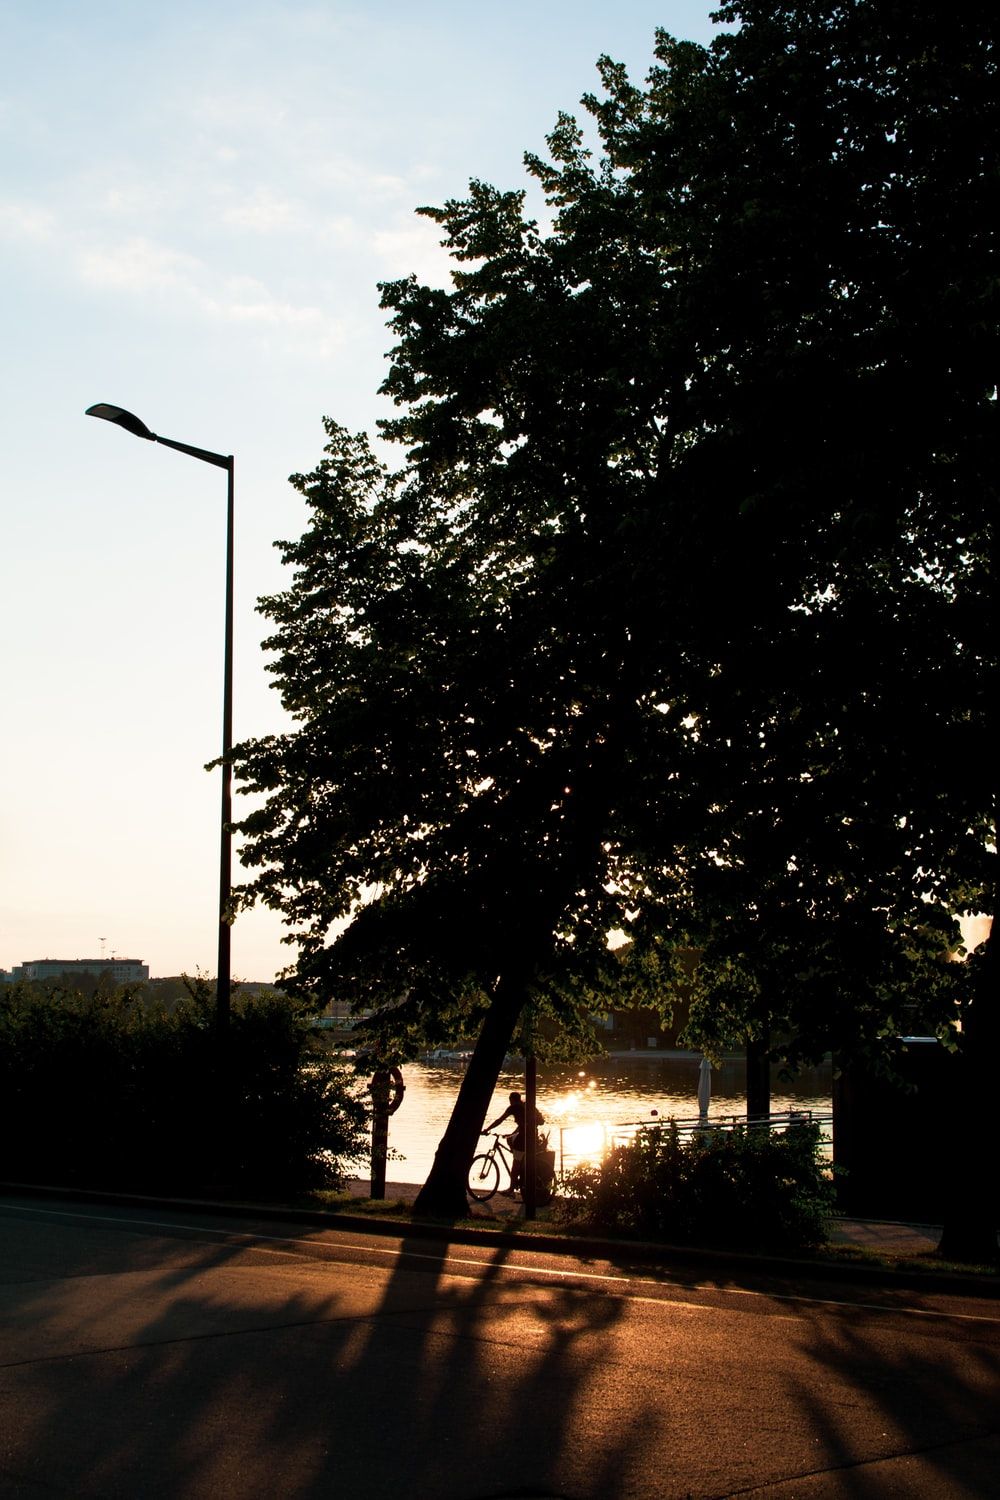 green tree beside road during daytime